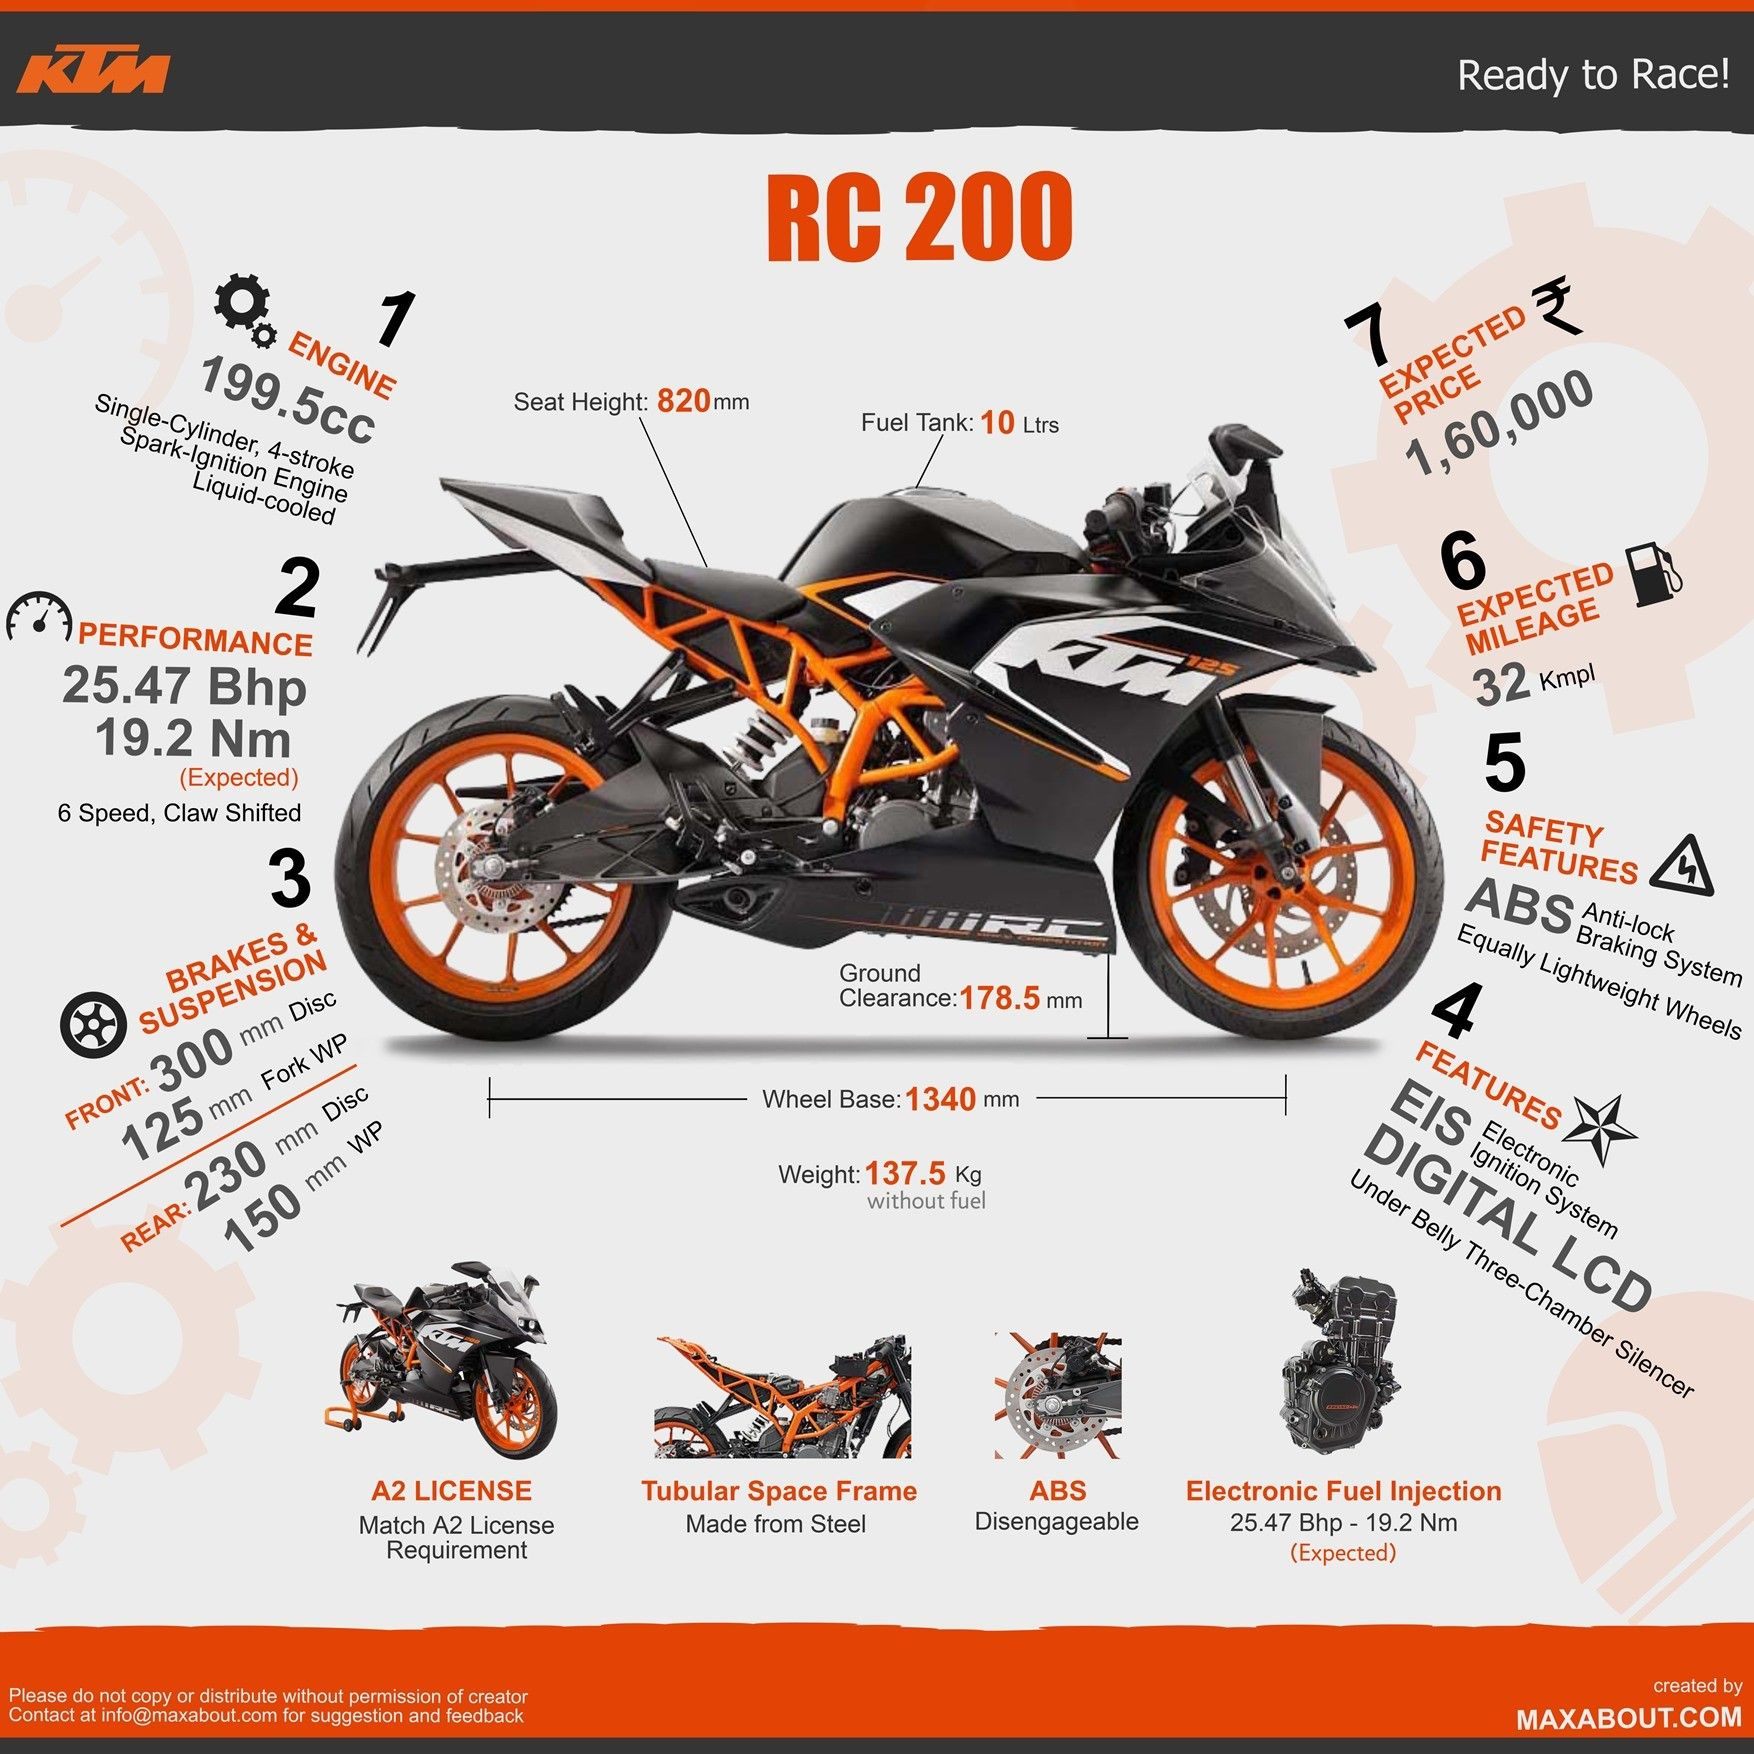 7 Things You Need To Know About Ktm Rc 200 Ktm Rc Ktm Rc 200 Ktm